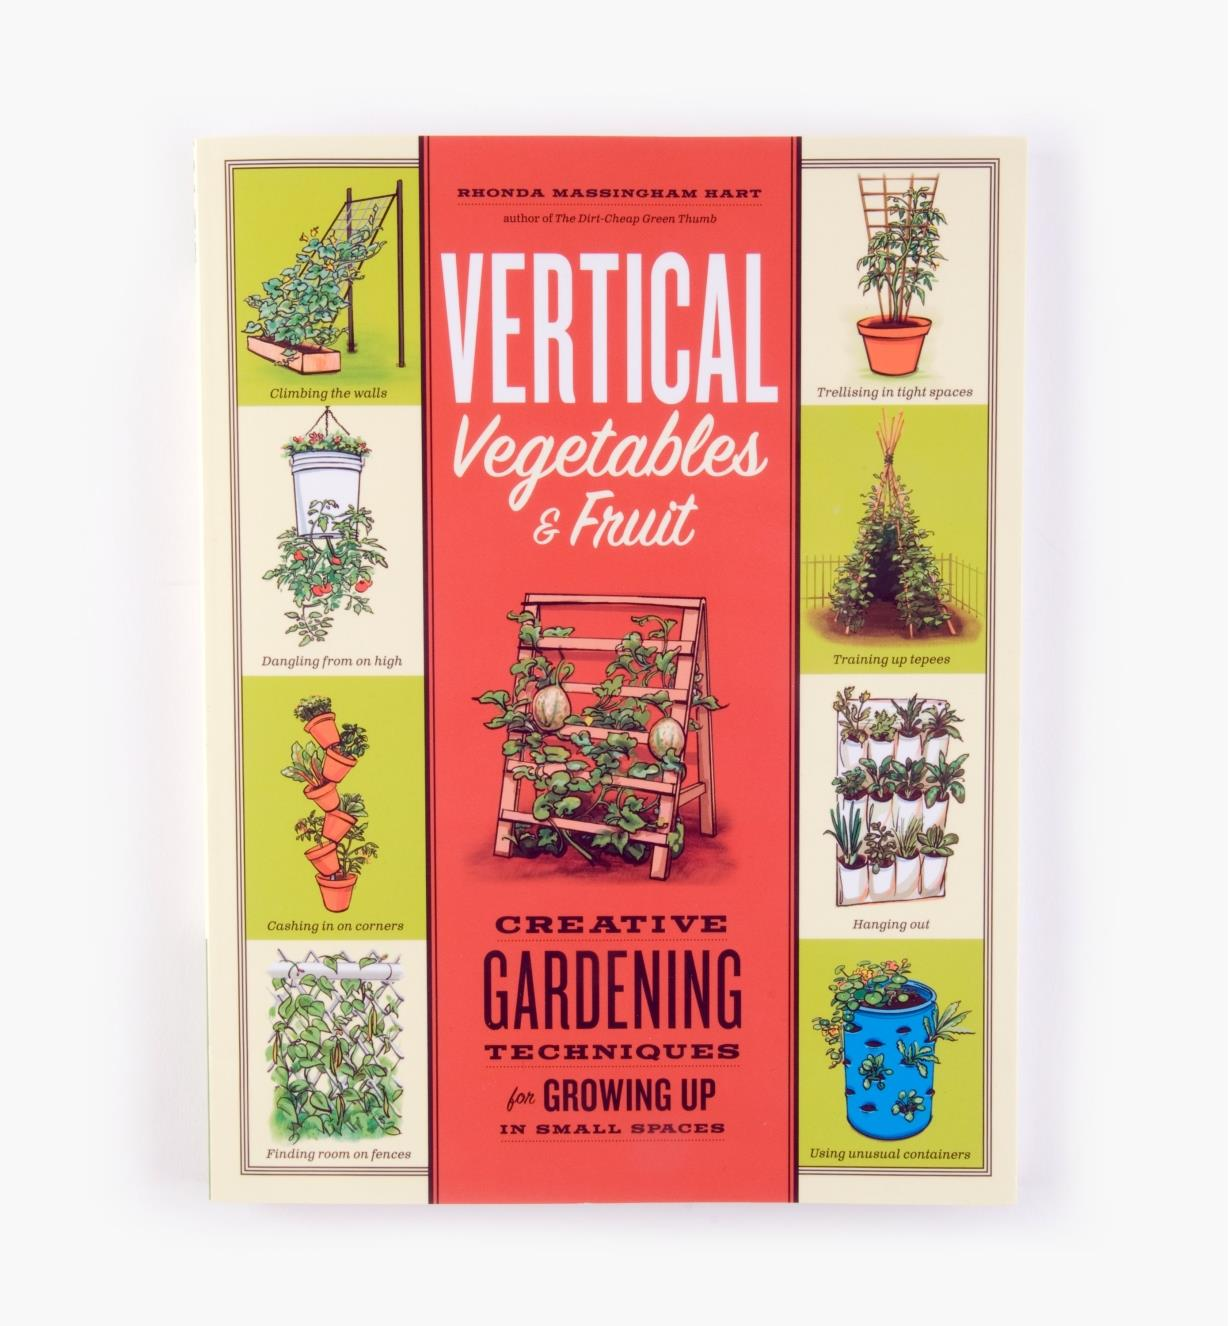 LA950 - Vertical Vegetables & Fruit